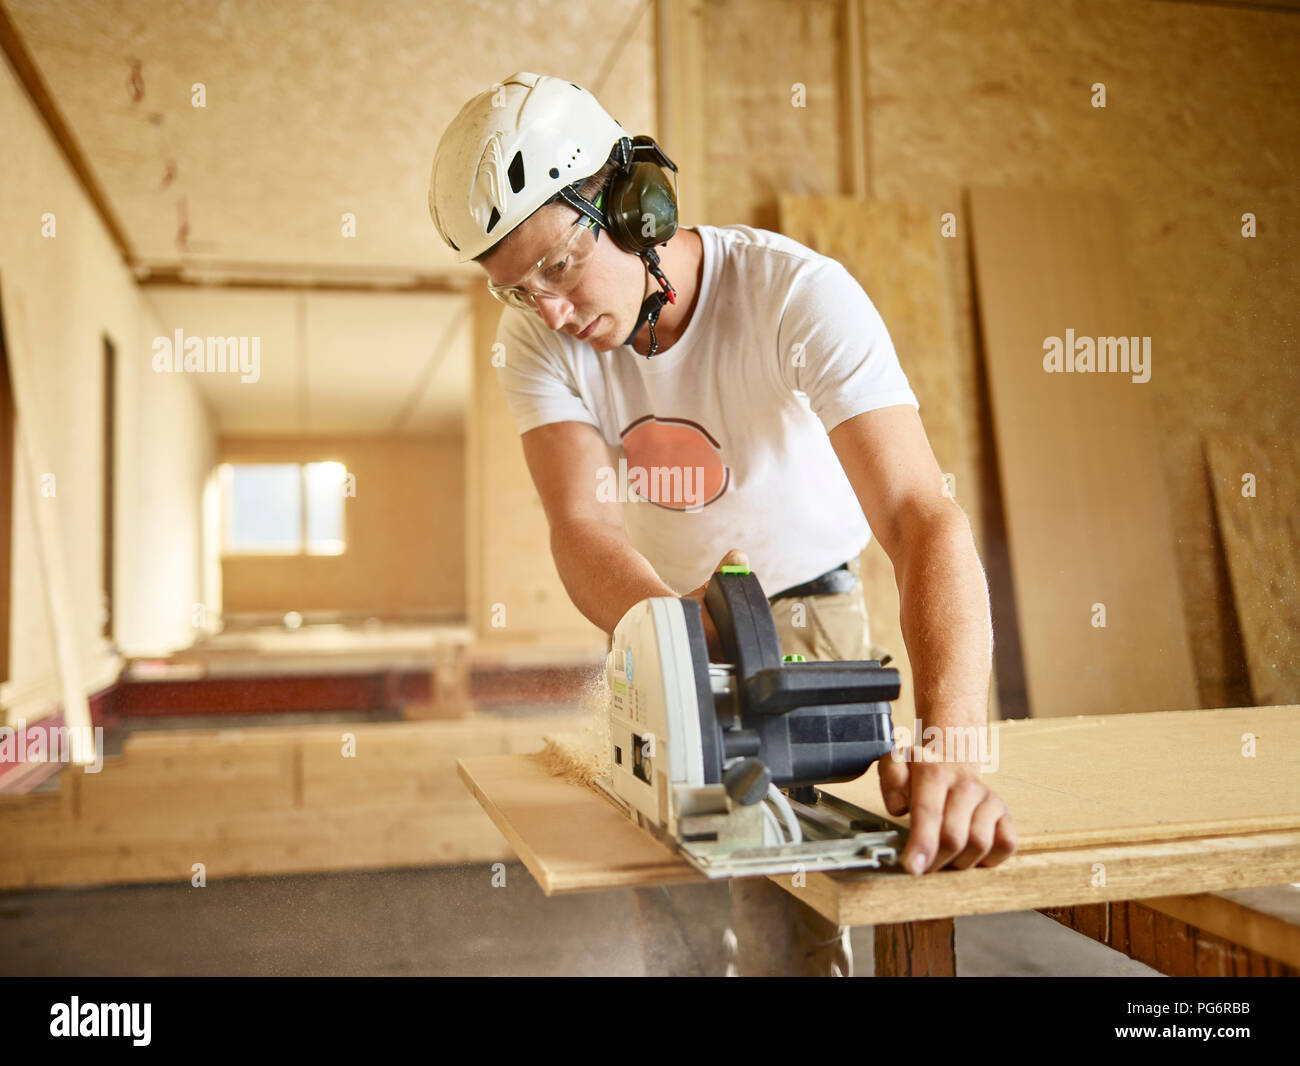 Worker with helmet sawing wood with circular saw - Stock Image